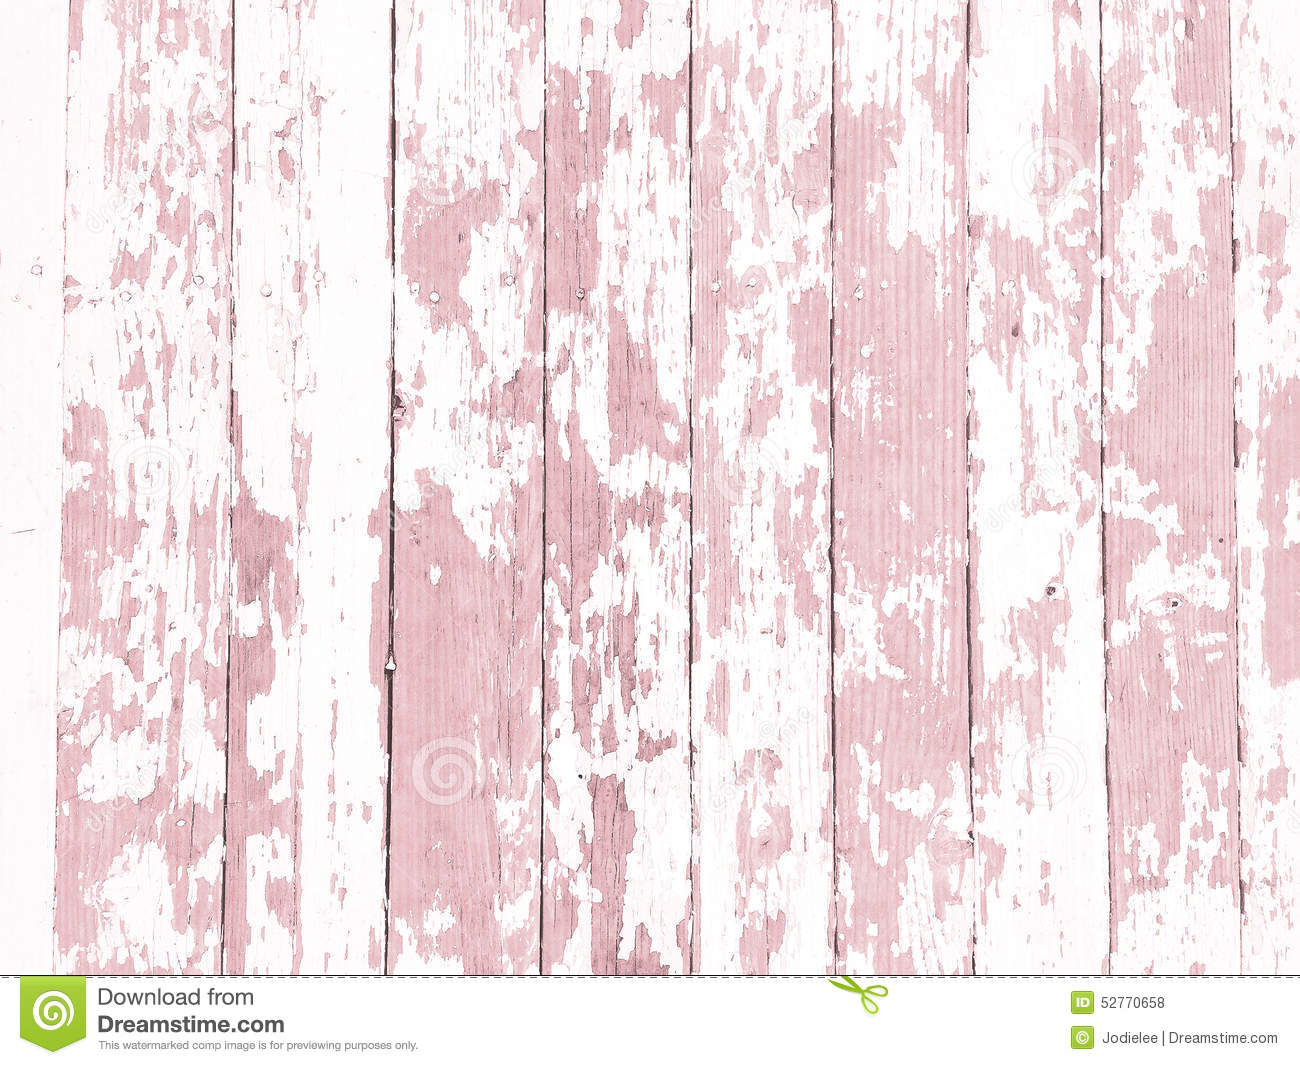 Shabby Wood Grain Texture White Washed With Distressed Peeling Paint